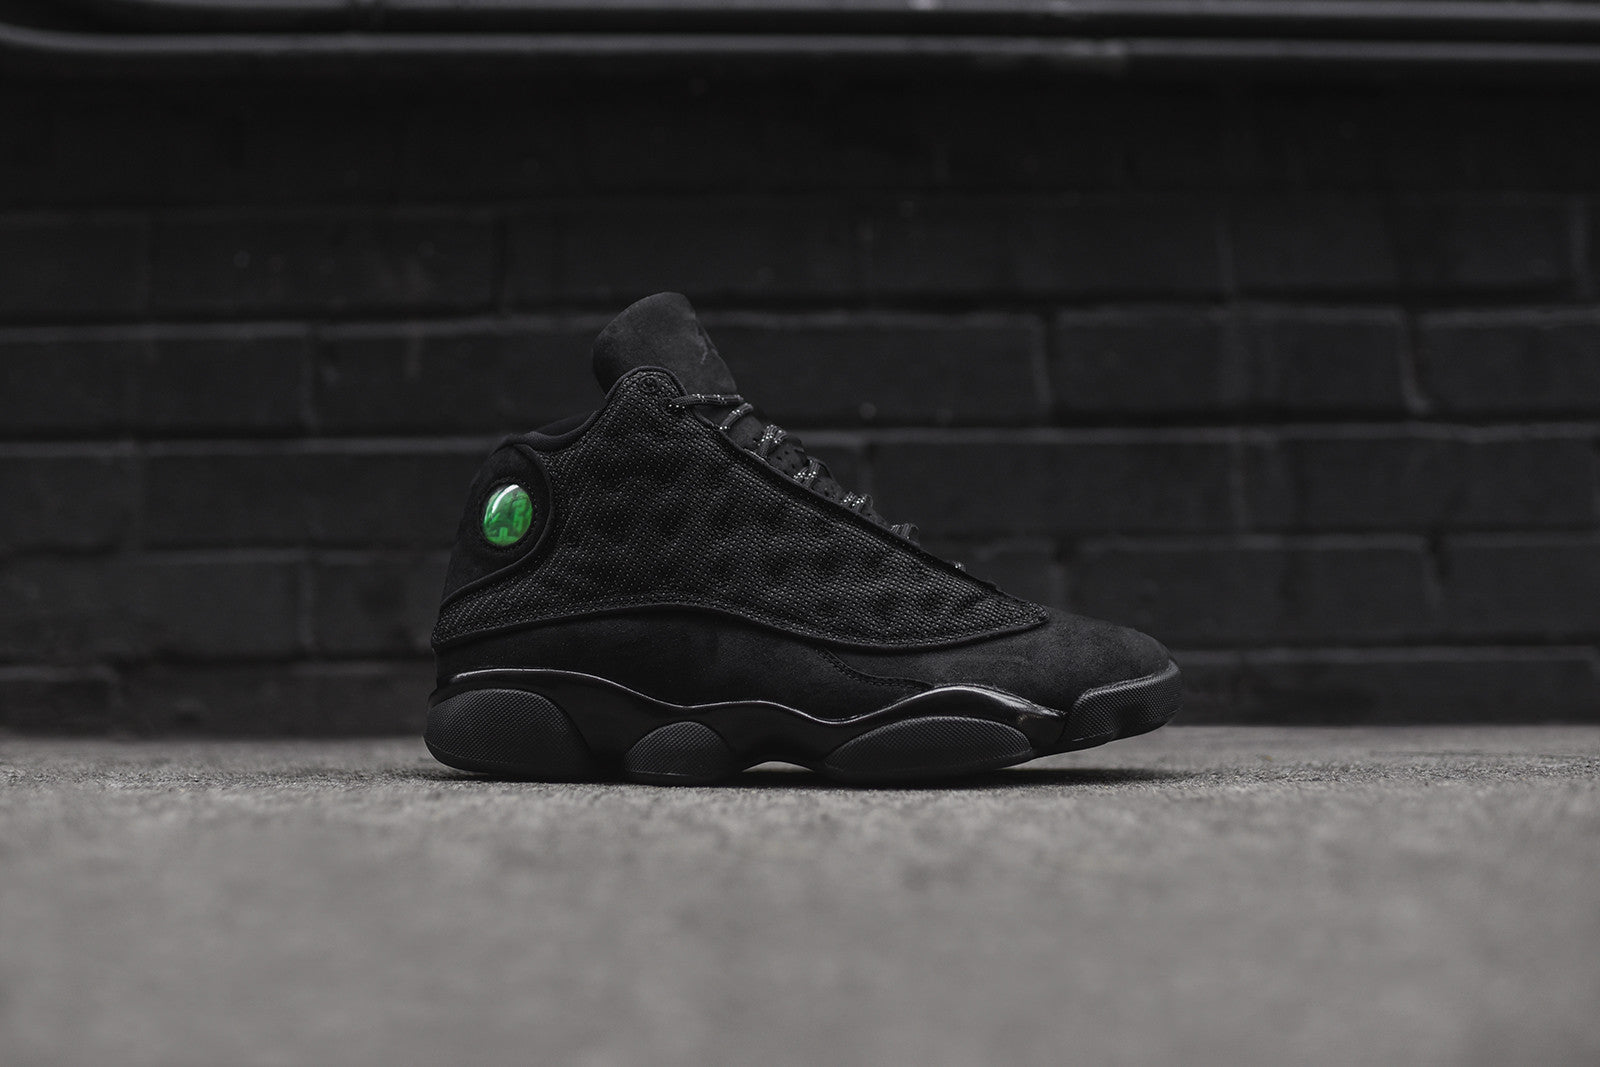 premium selection 802c2 efb9d ... free shipping nike air jordan 13 retro black cat 39c84 06186